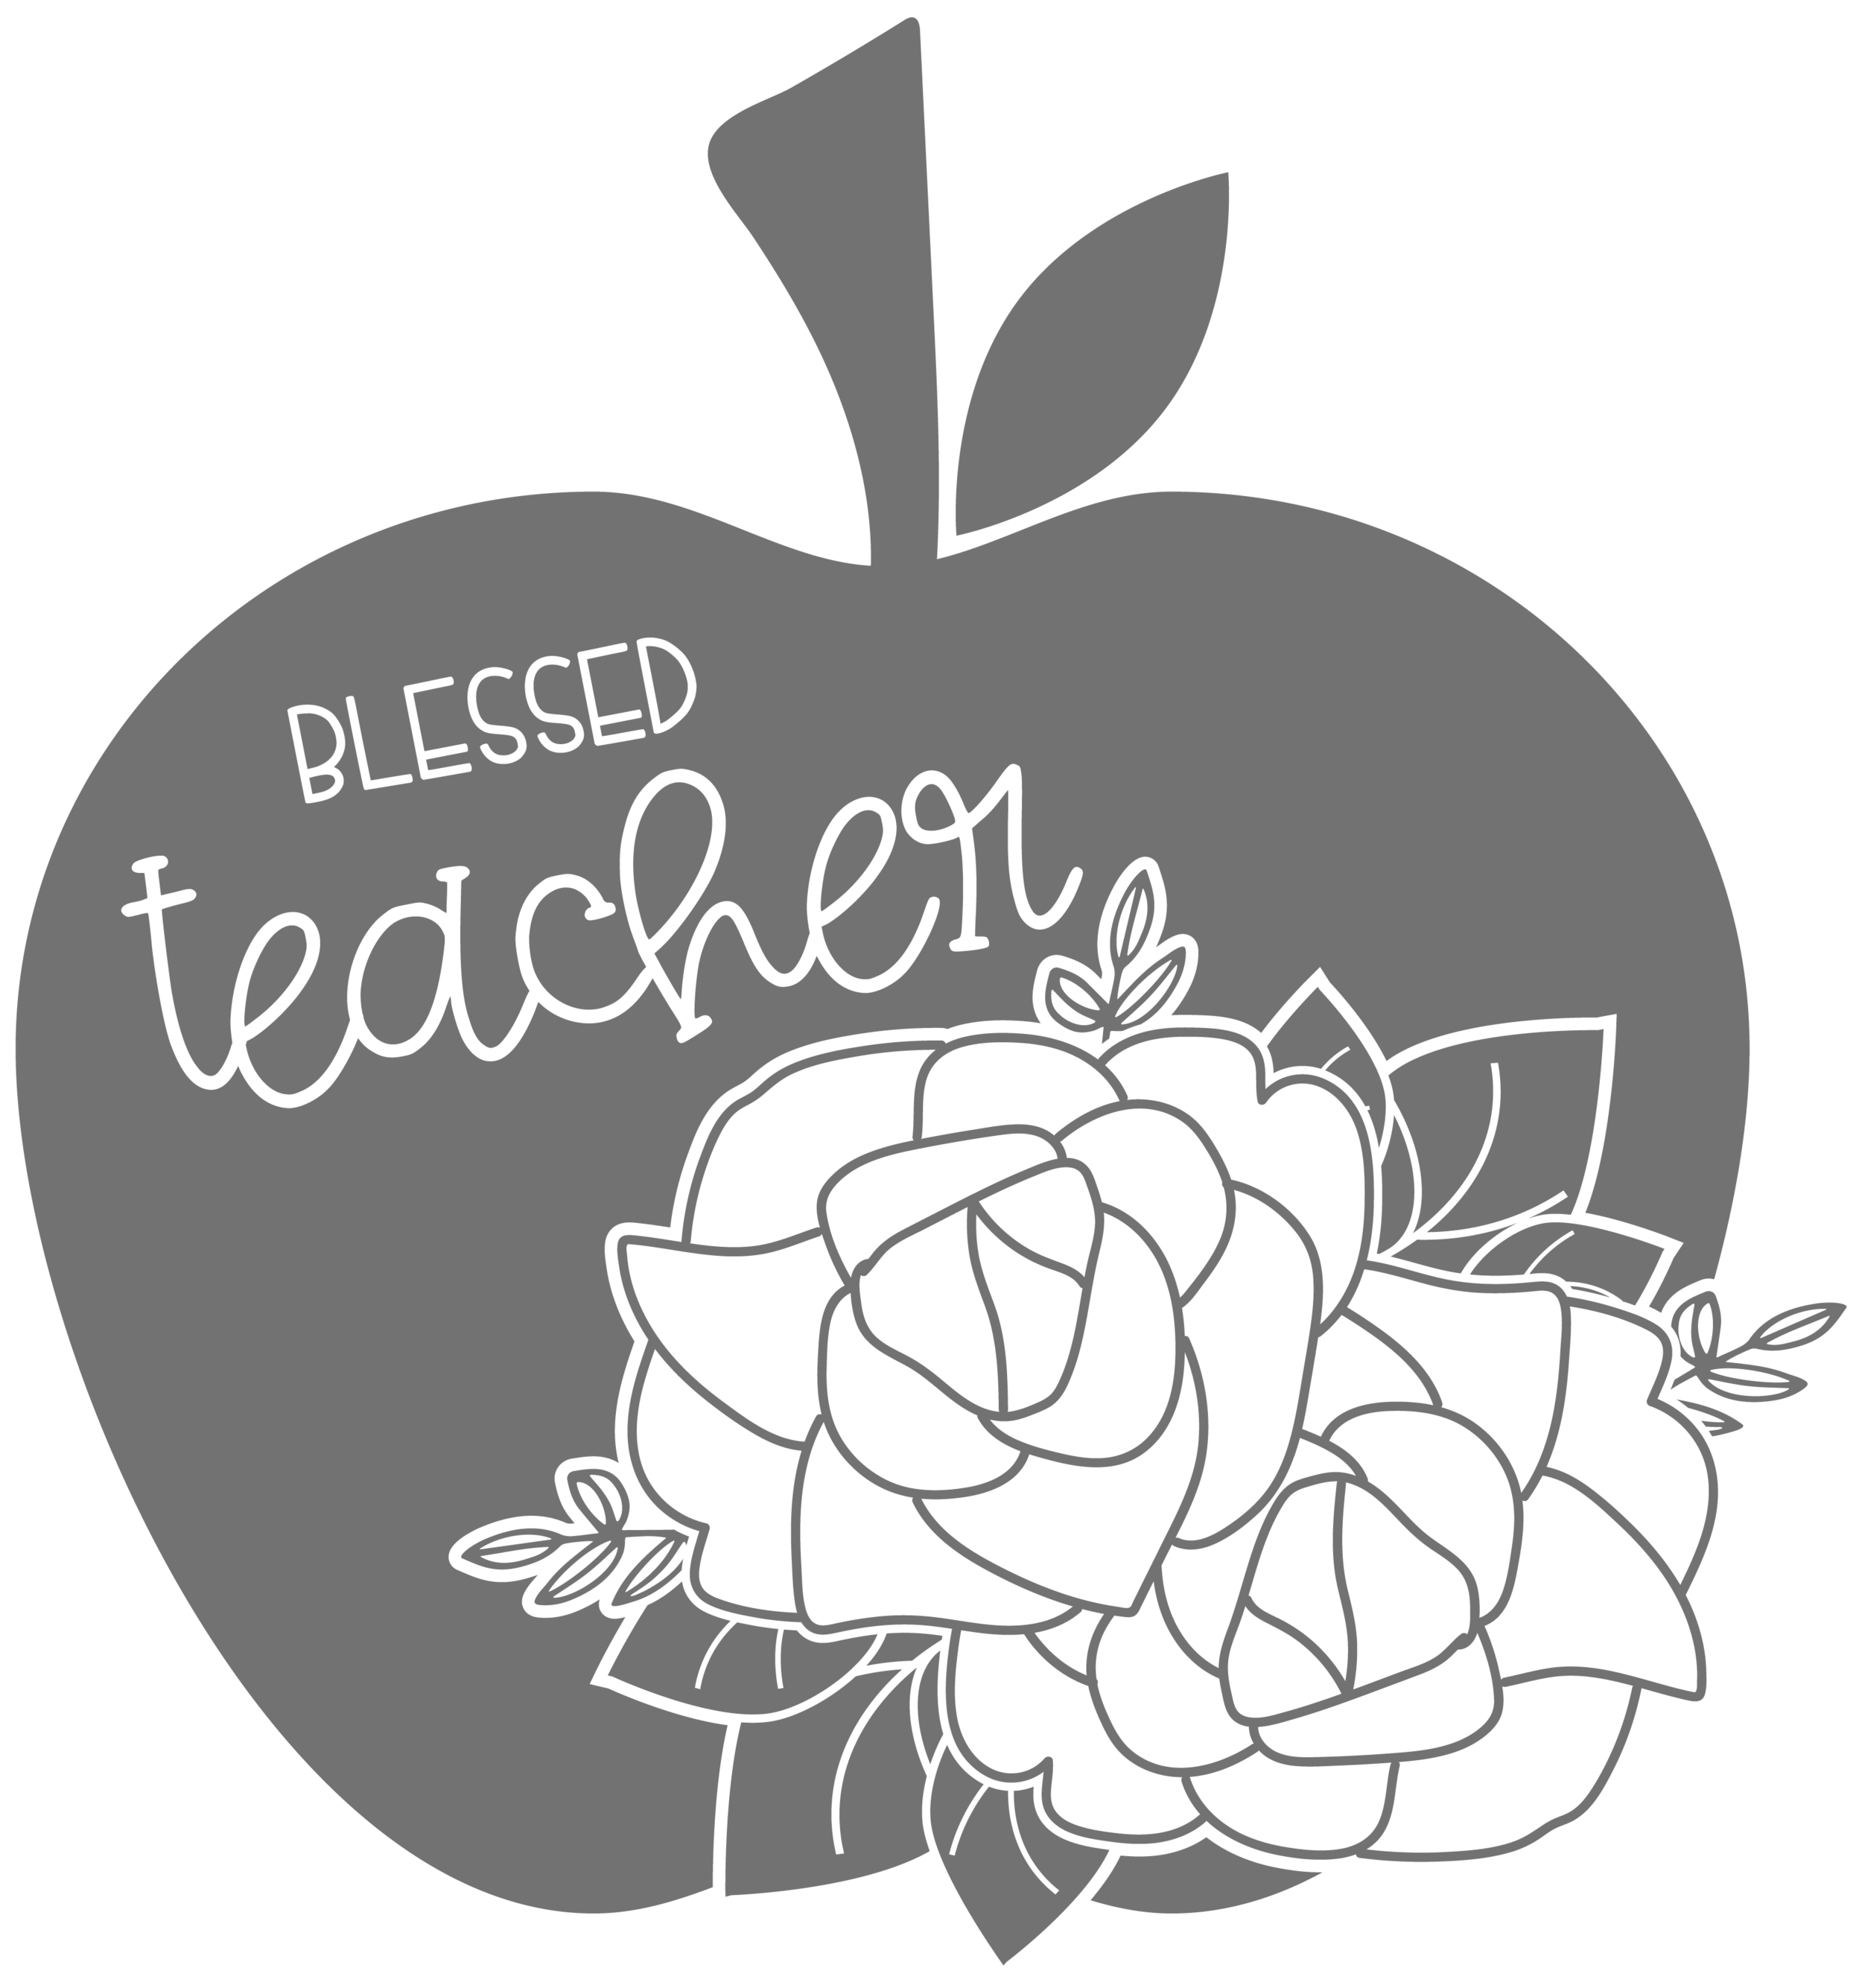 Blessed Teacher Floral Apple.png